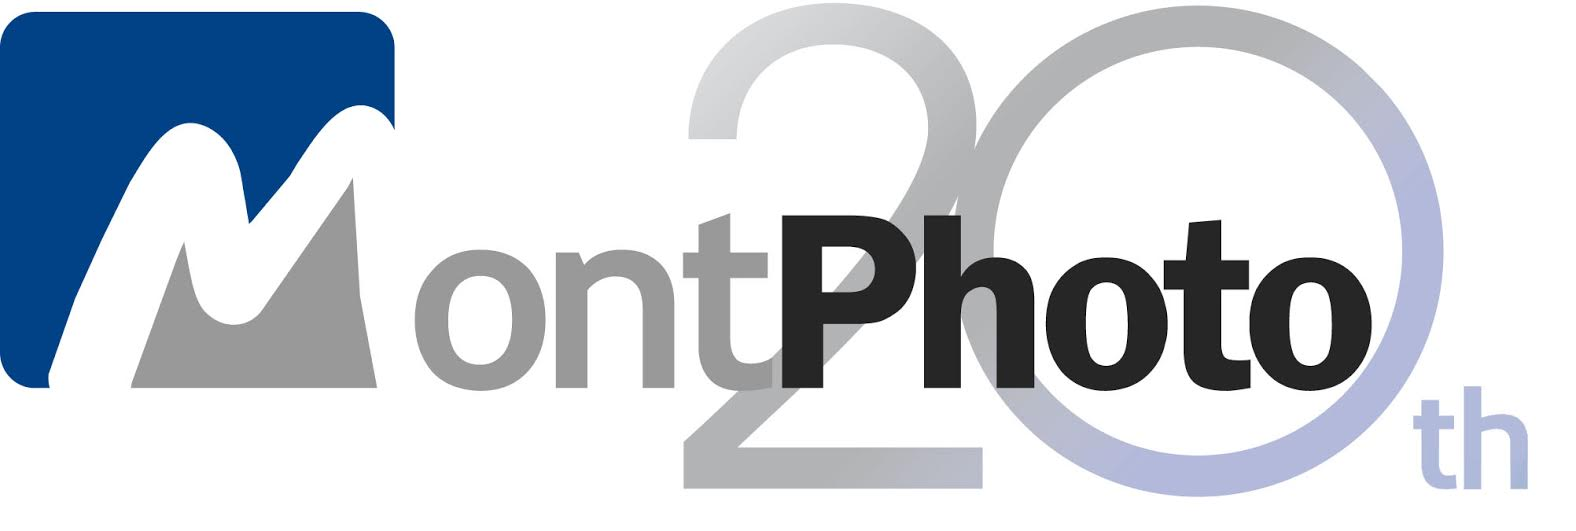 MontPhoto 2016 – International Nature Photography Contest - logo